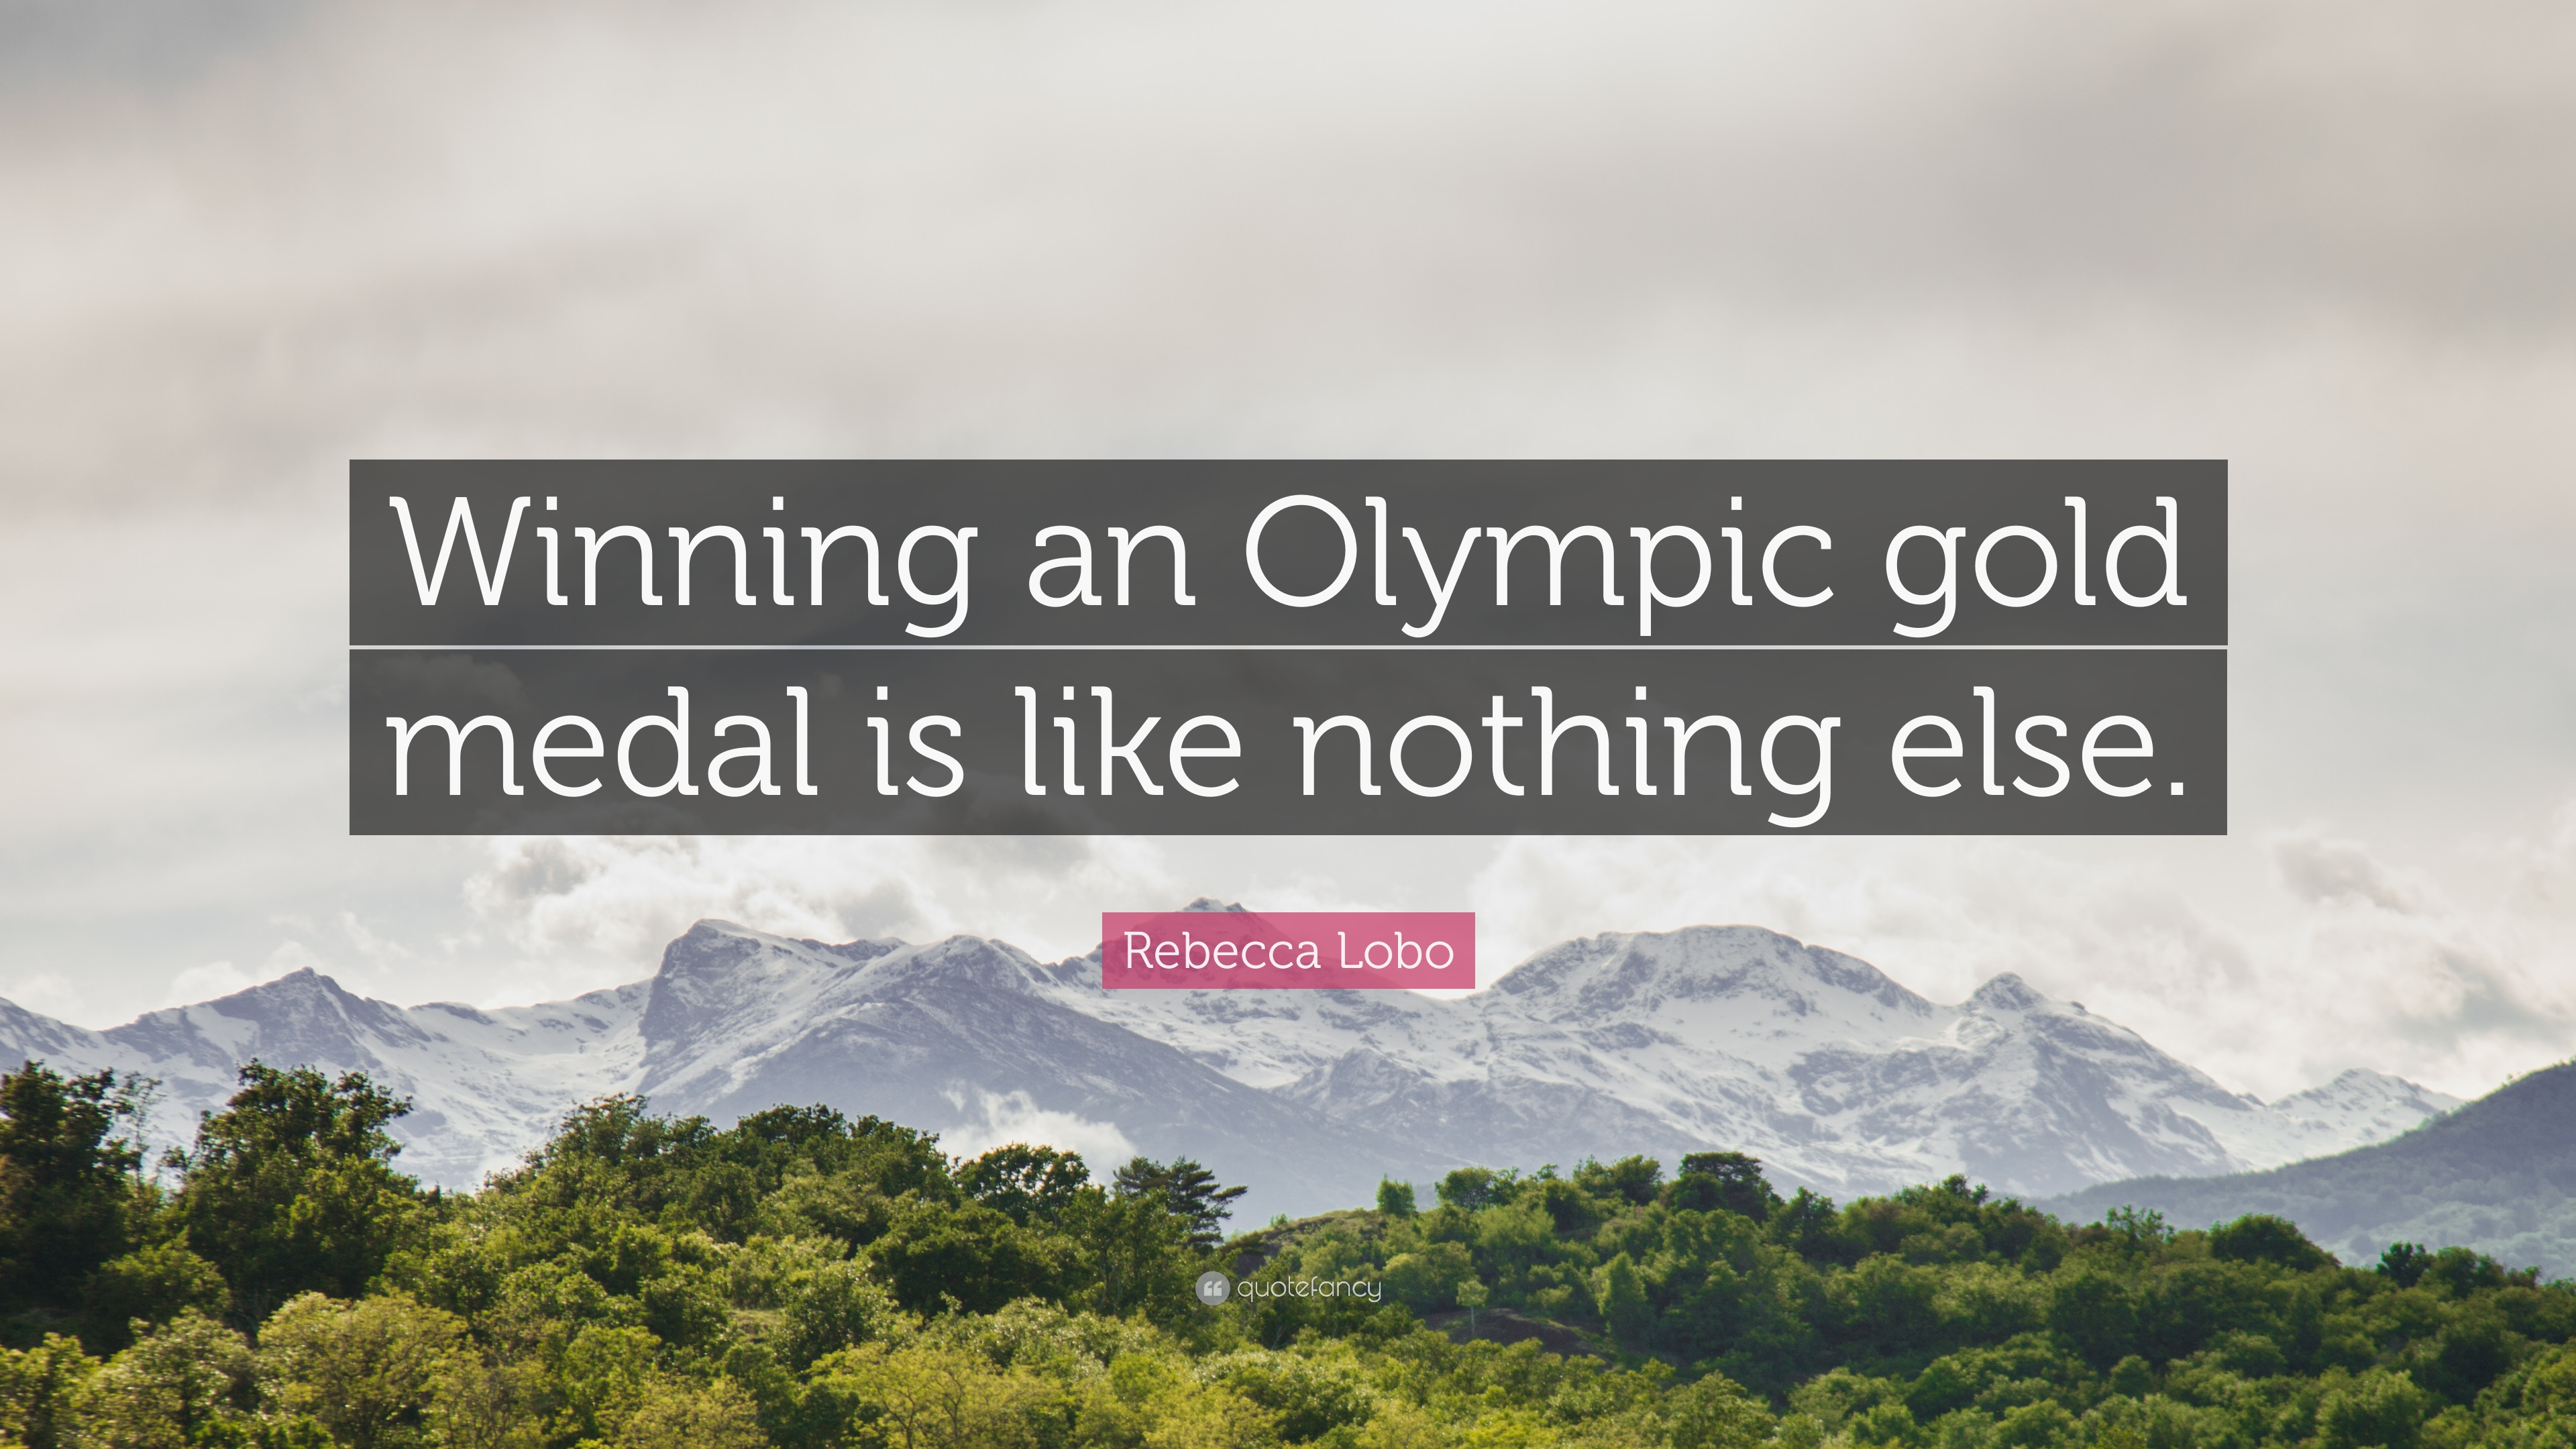 3840x2160 - Olympic Gold Metal Wallpapers 27